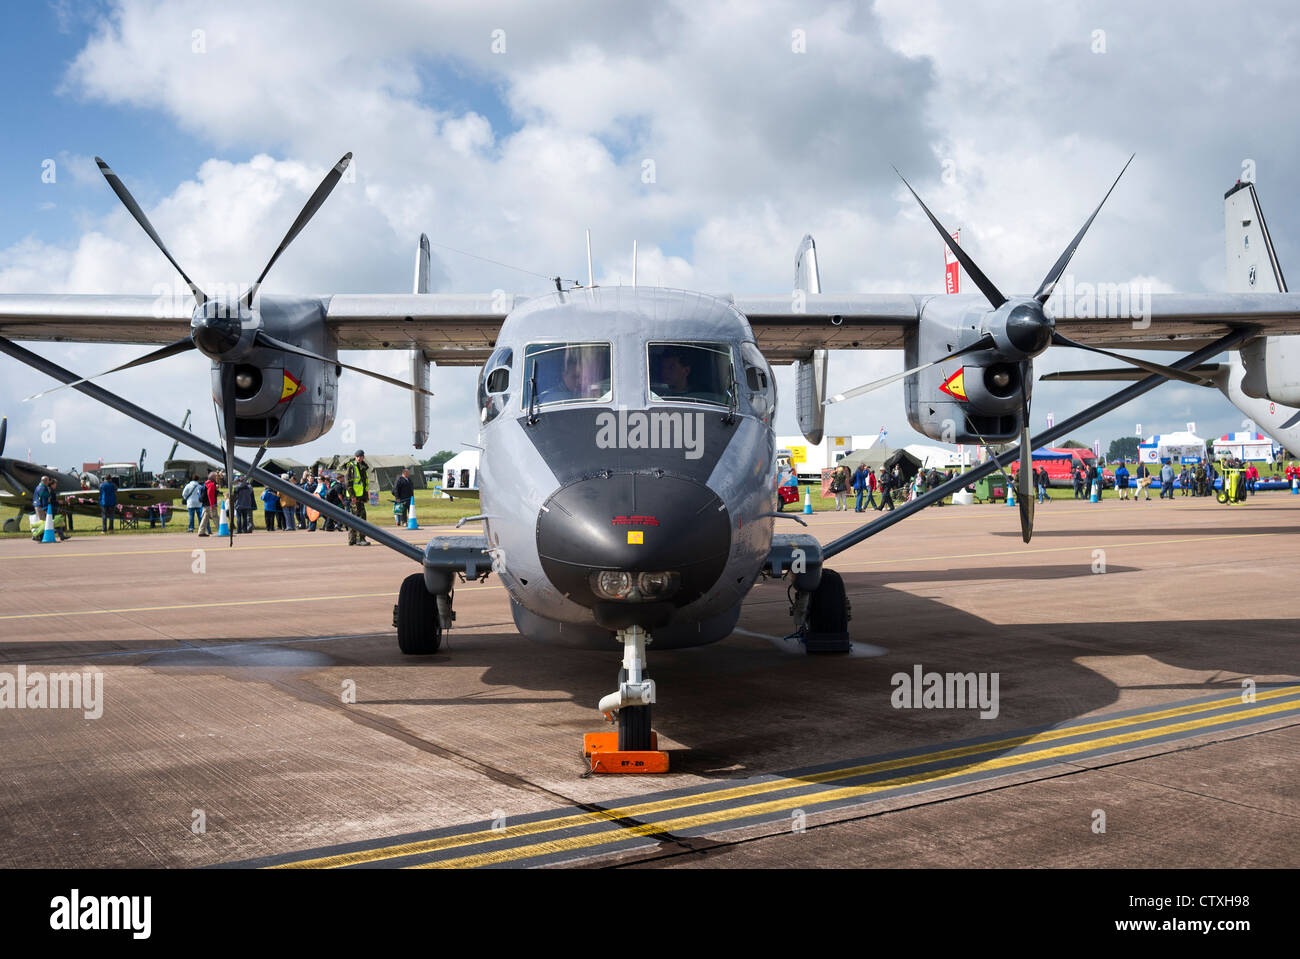 Front view of Antonov An-28 aircraft on static display at RAF Fairford - Stock Image